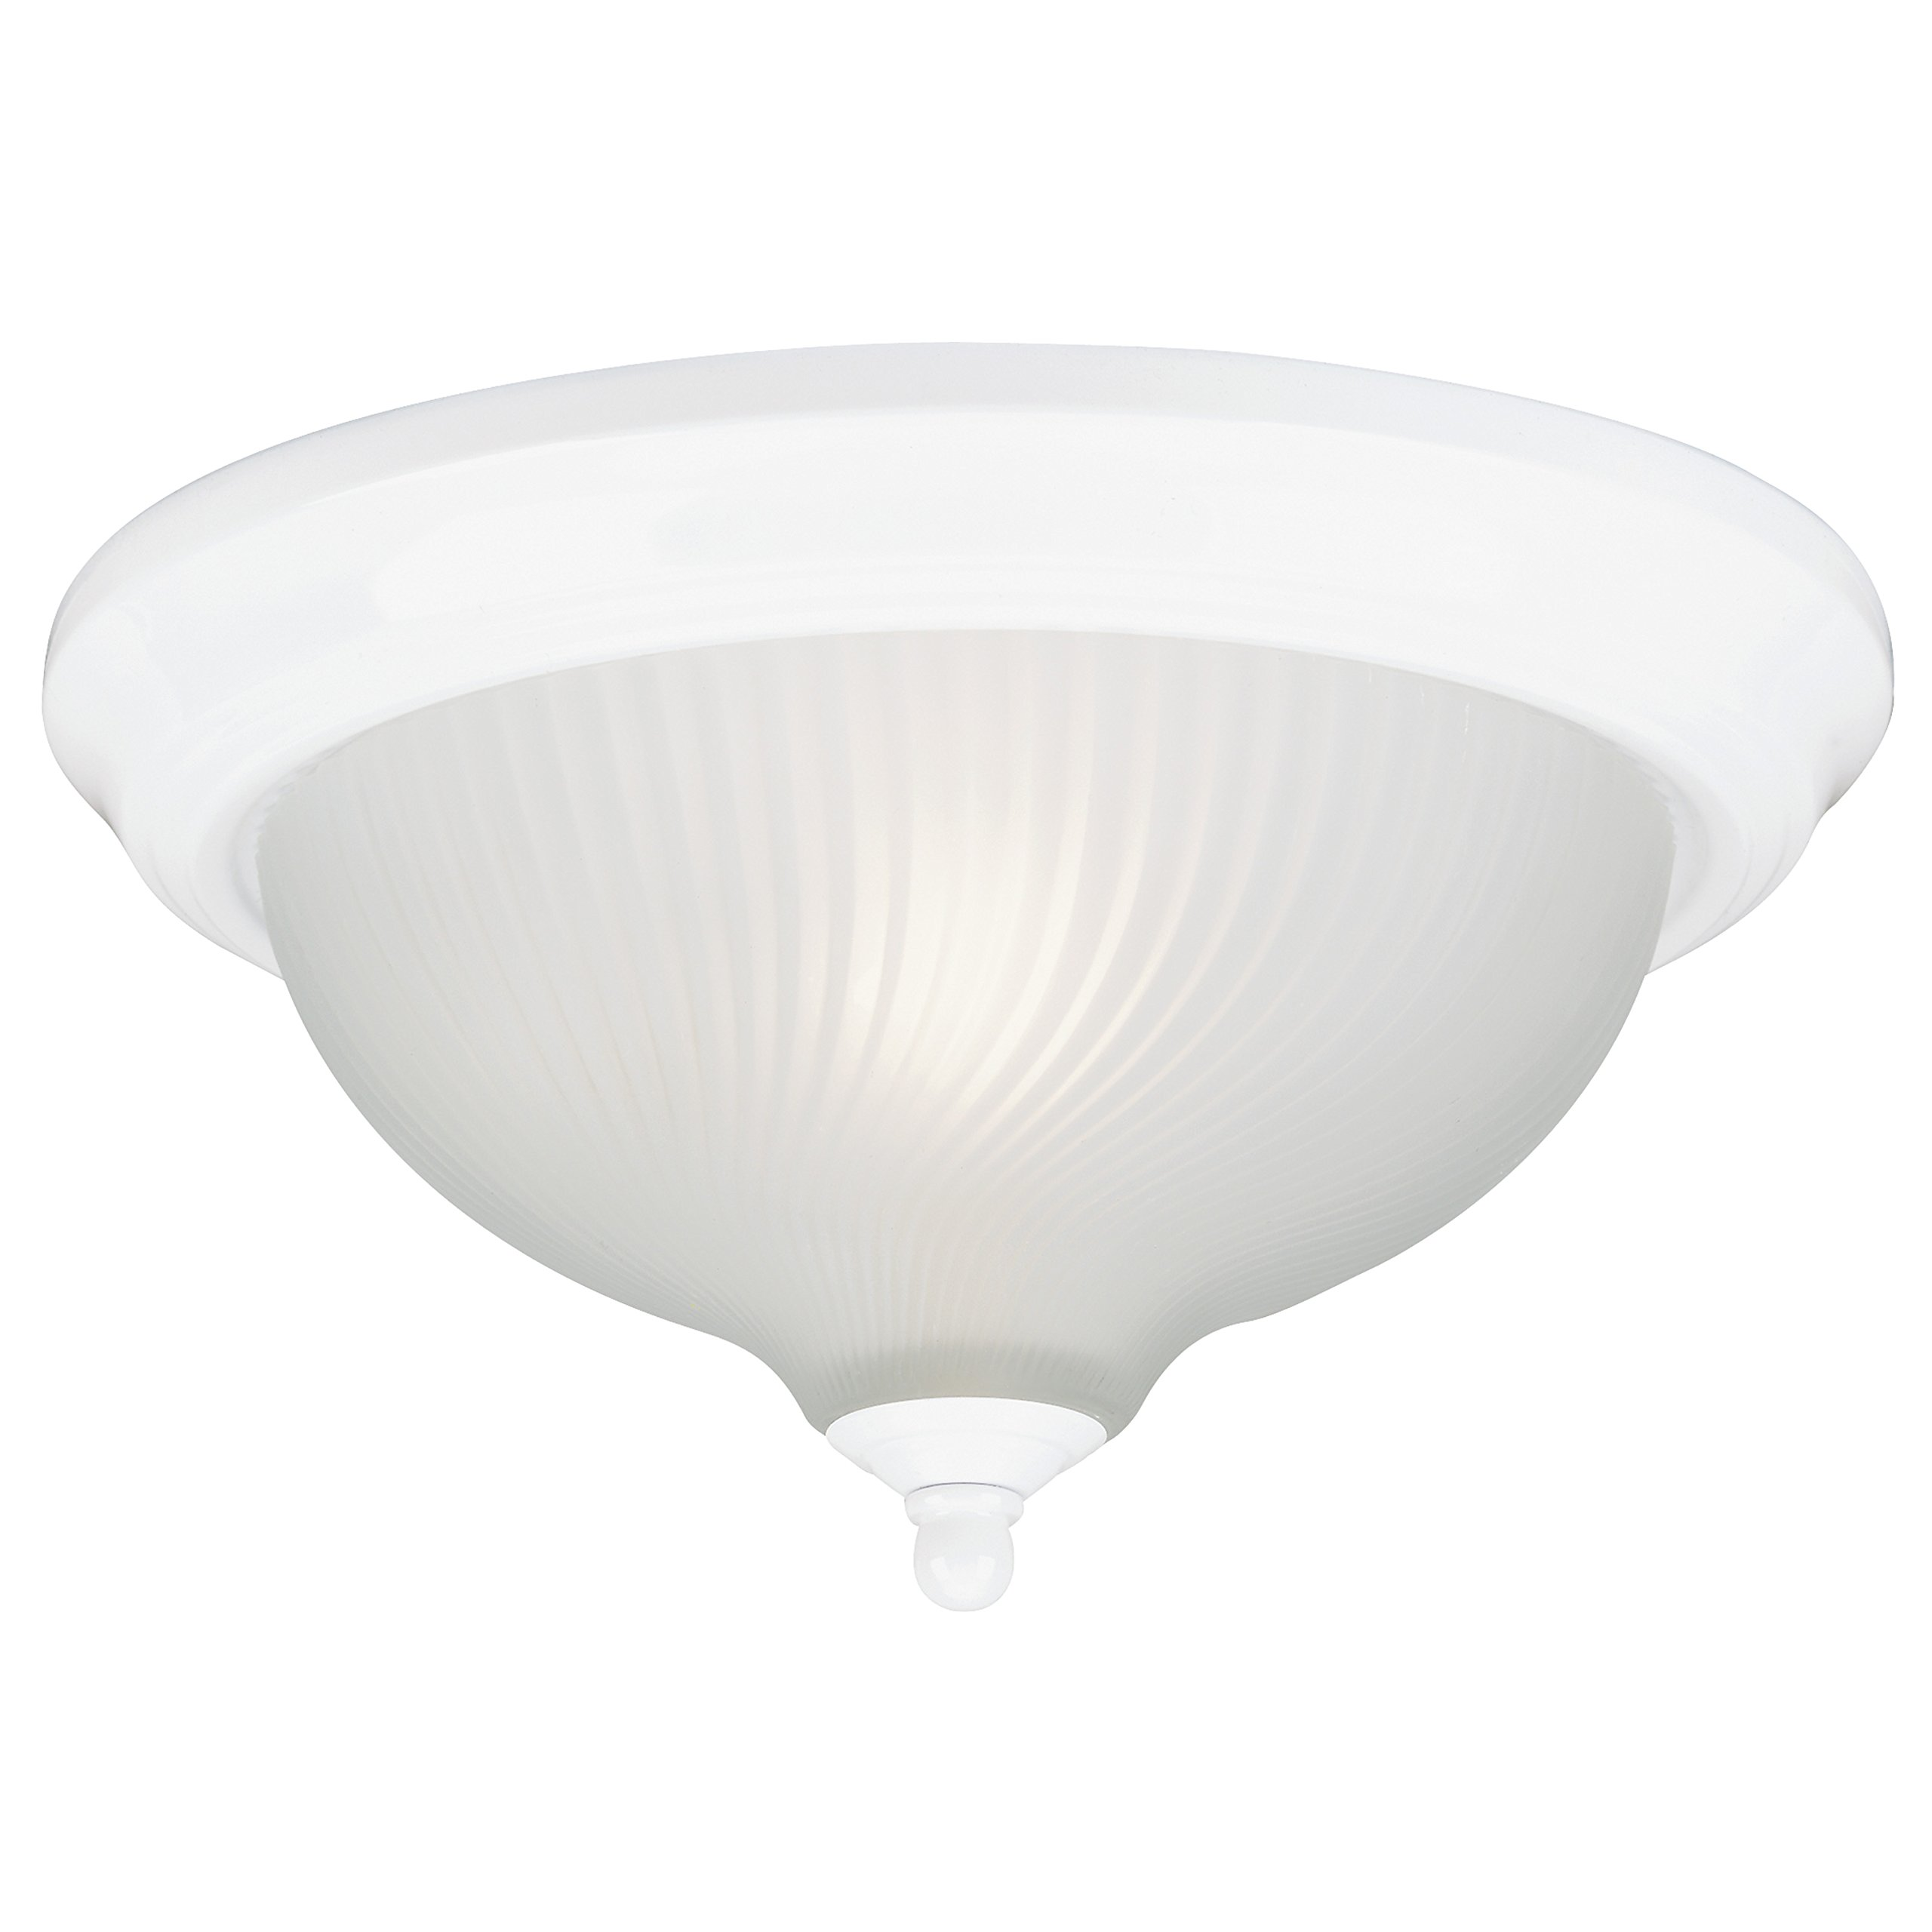 Westinghouse Lighting  66378 Corp 11-3/4-Inch Ceiling Fixture, White